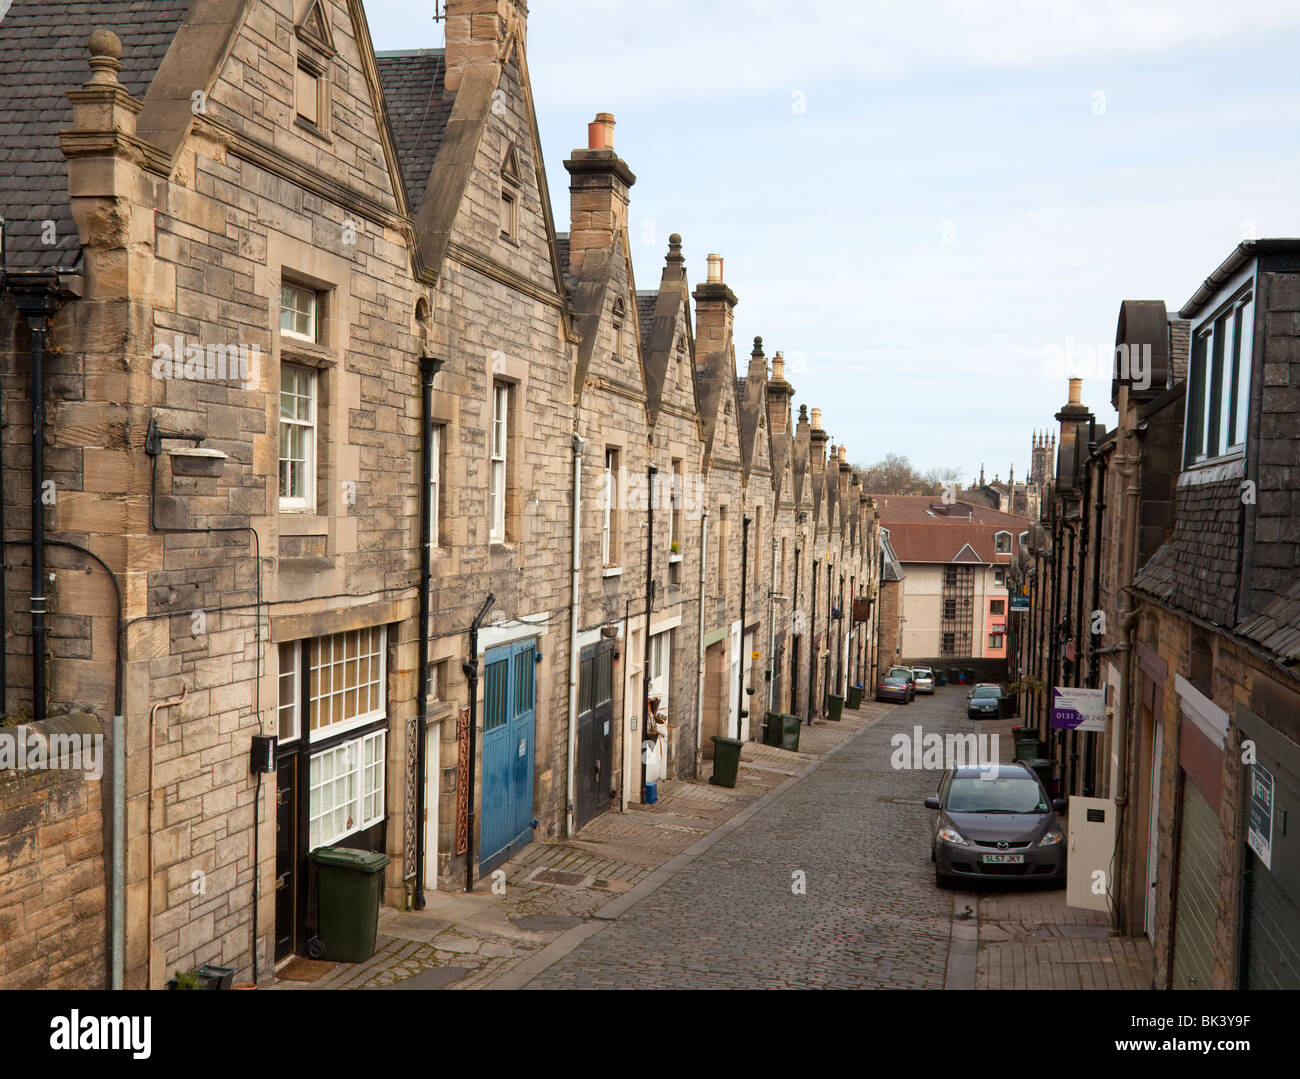 Douglas Gardens Mews, a small street of residences and small businesses in the quiet Dean Village area of Edinburgh, - Stock Image